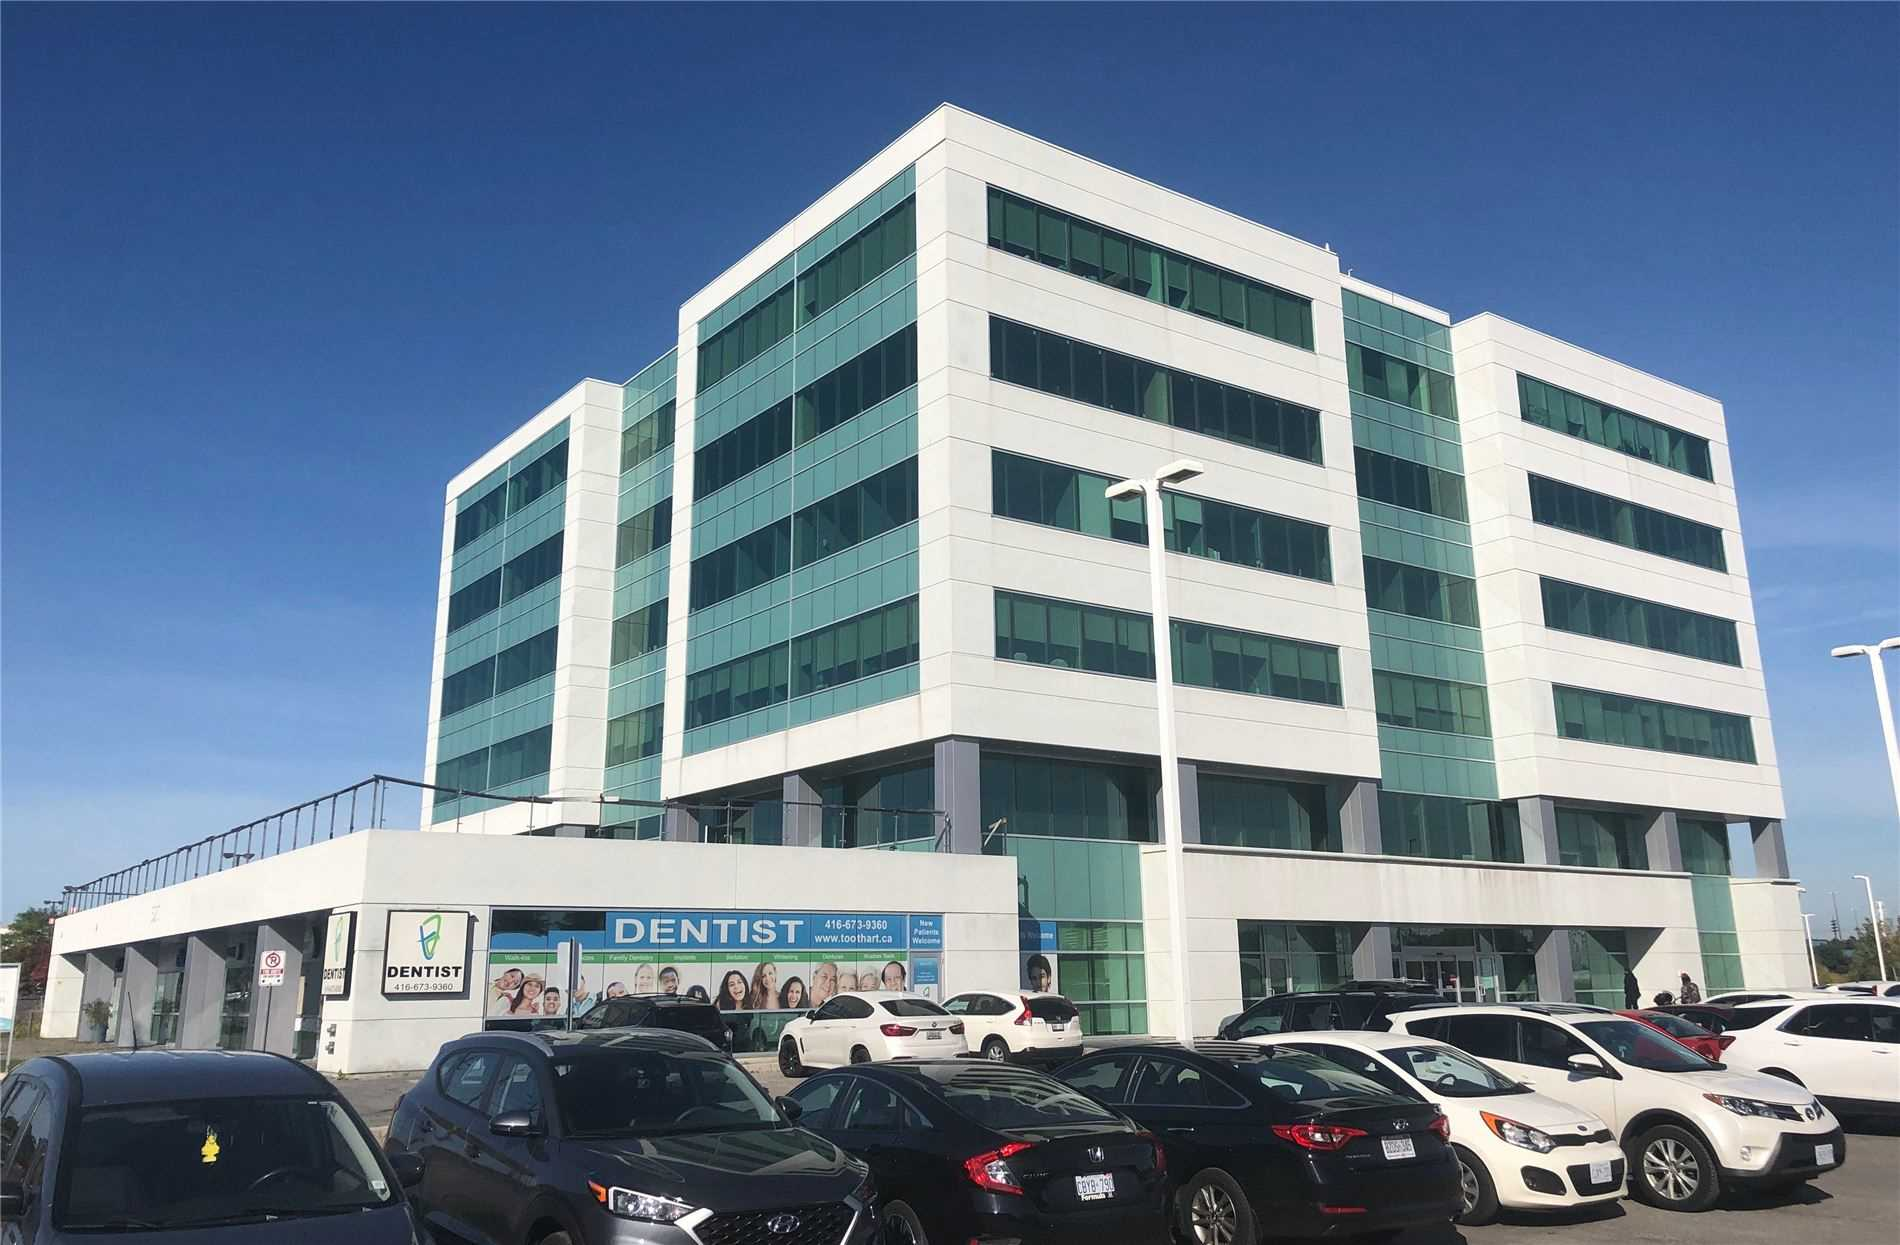 520 Ellesmere Rd G115, Wexford-Maryvale, Toronto, Ontario M1R4E6, ,Commercial/retail,For Lease,Ellesmere,E5060071